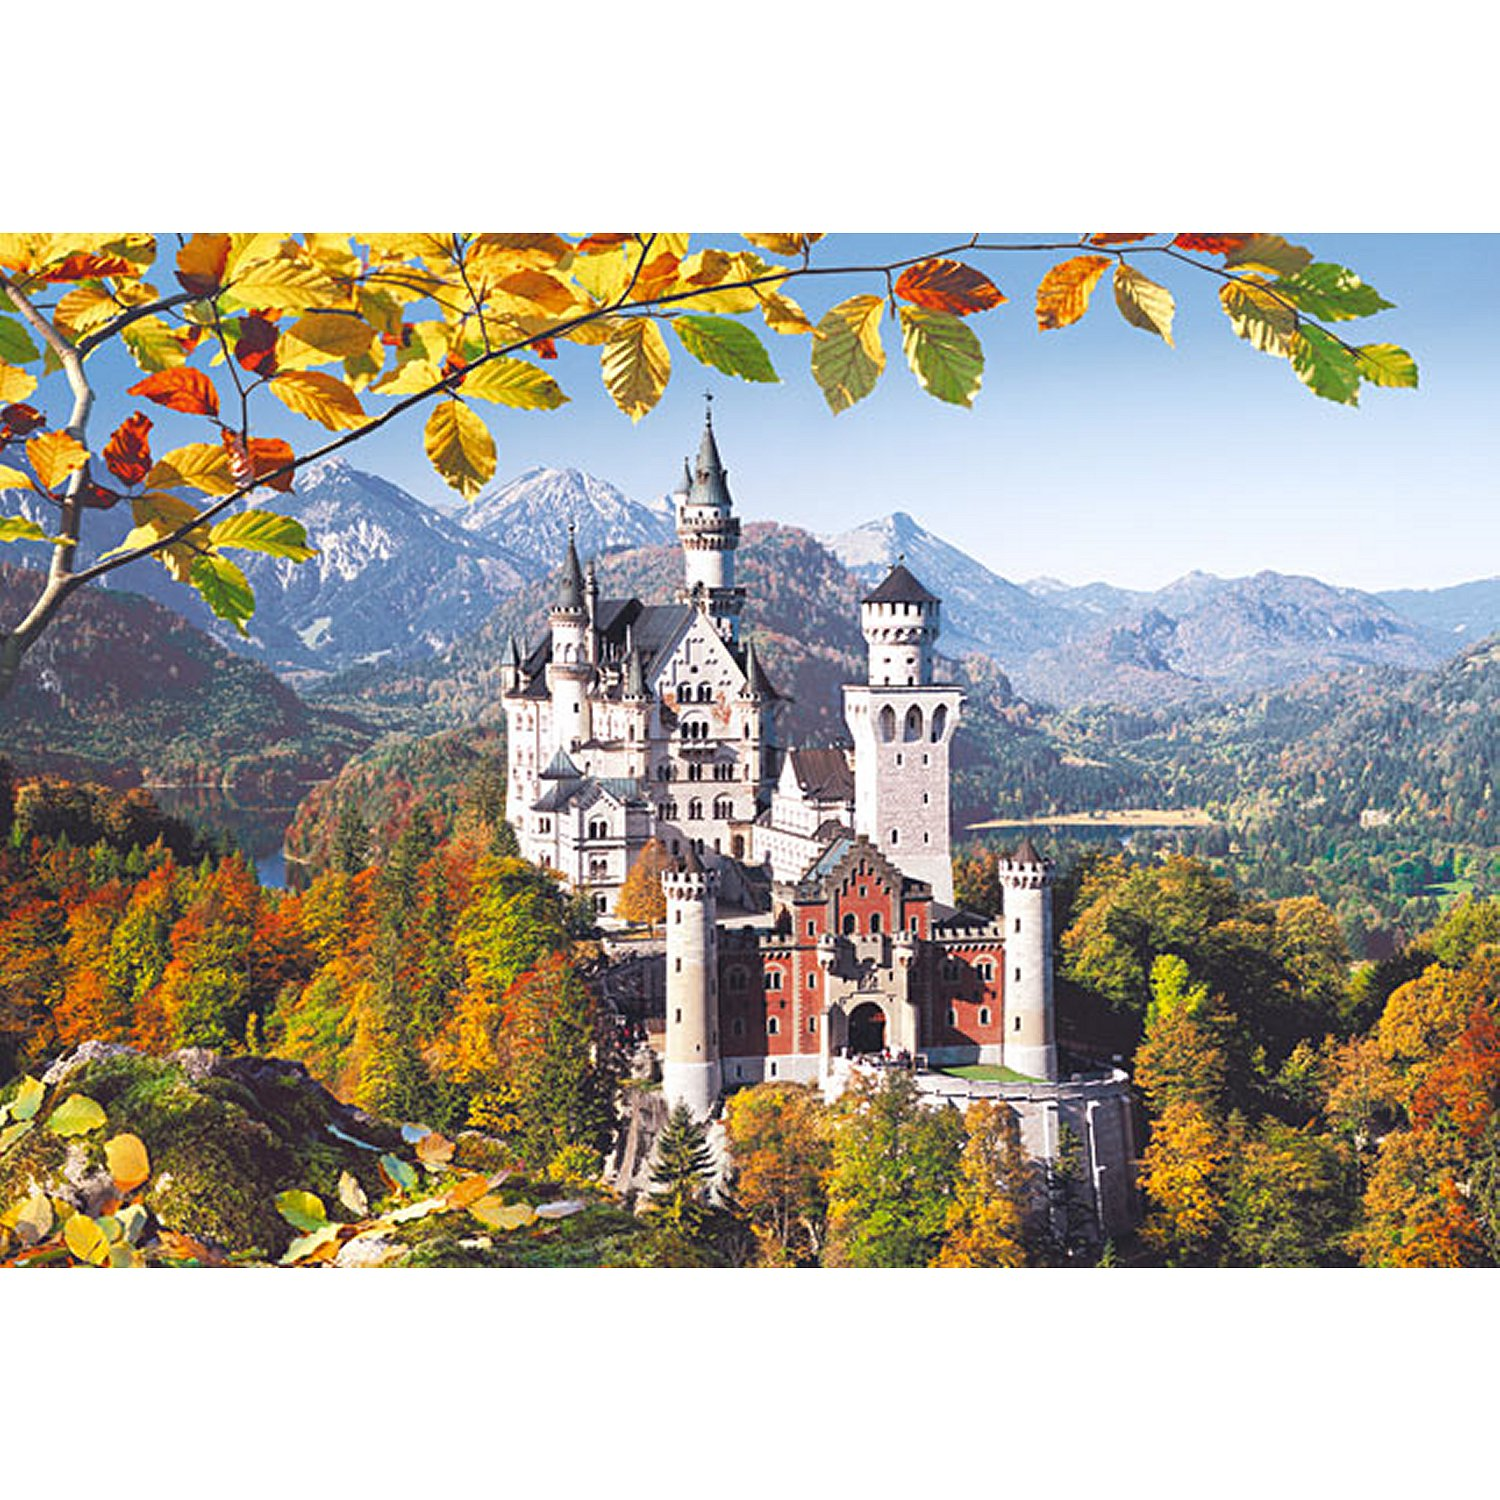 jigsaw puzzle 3000 pieces neuschwanstein castle germany castorland 300013 3000 pieces. Black Bedroom Furniture Sets. Home Design Ideas